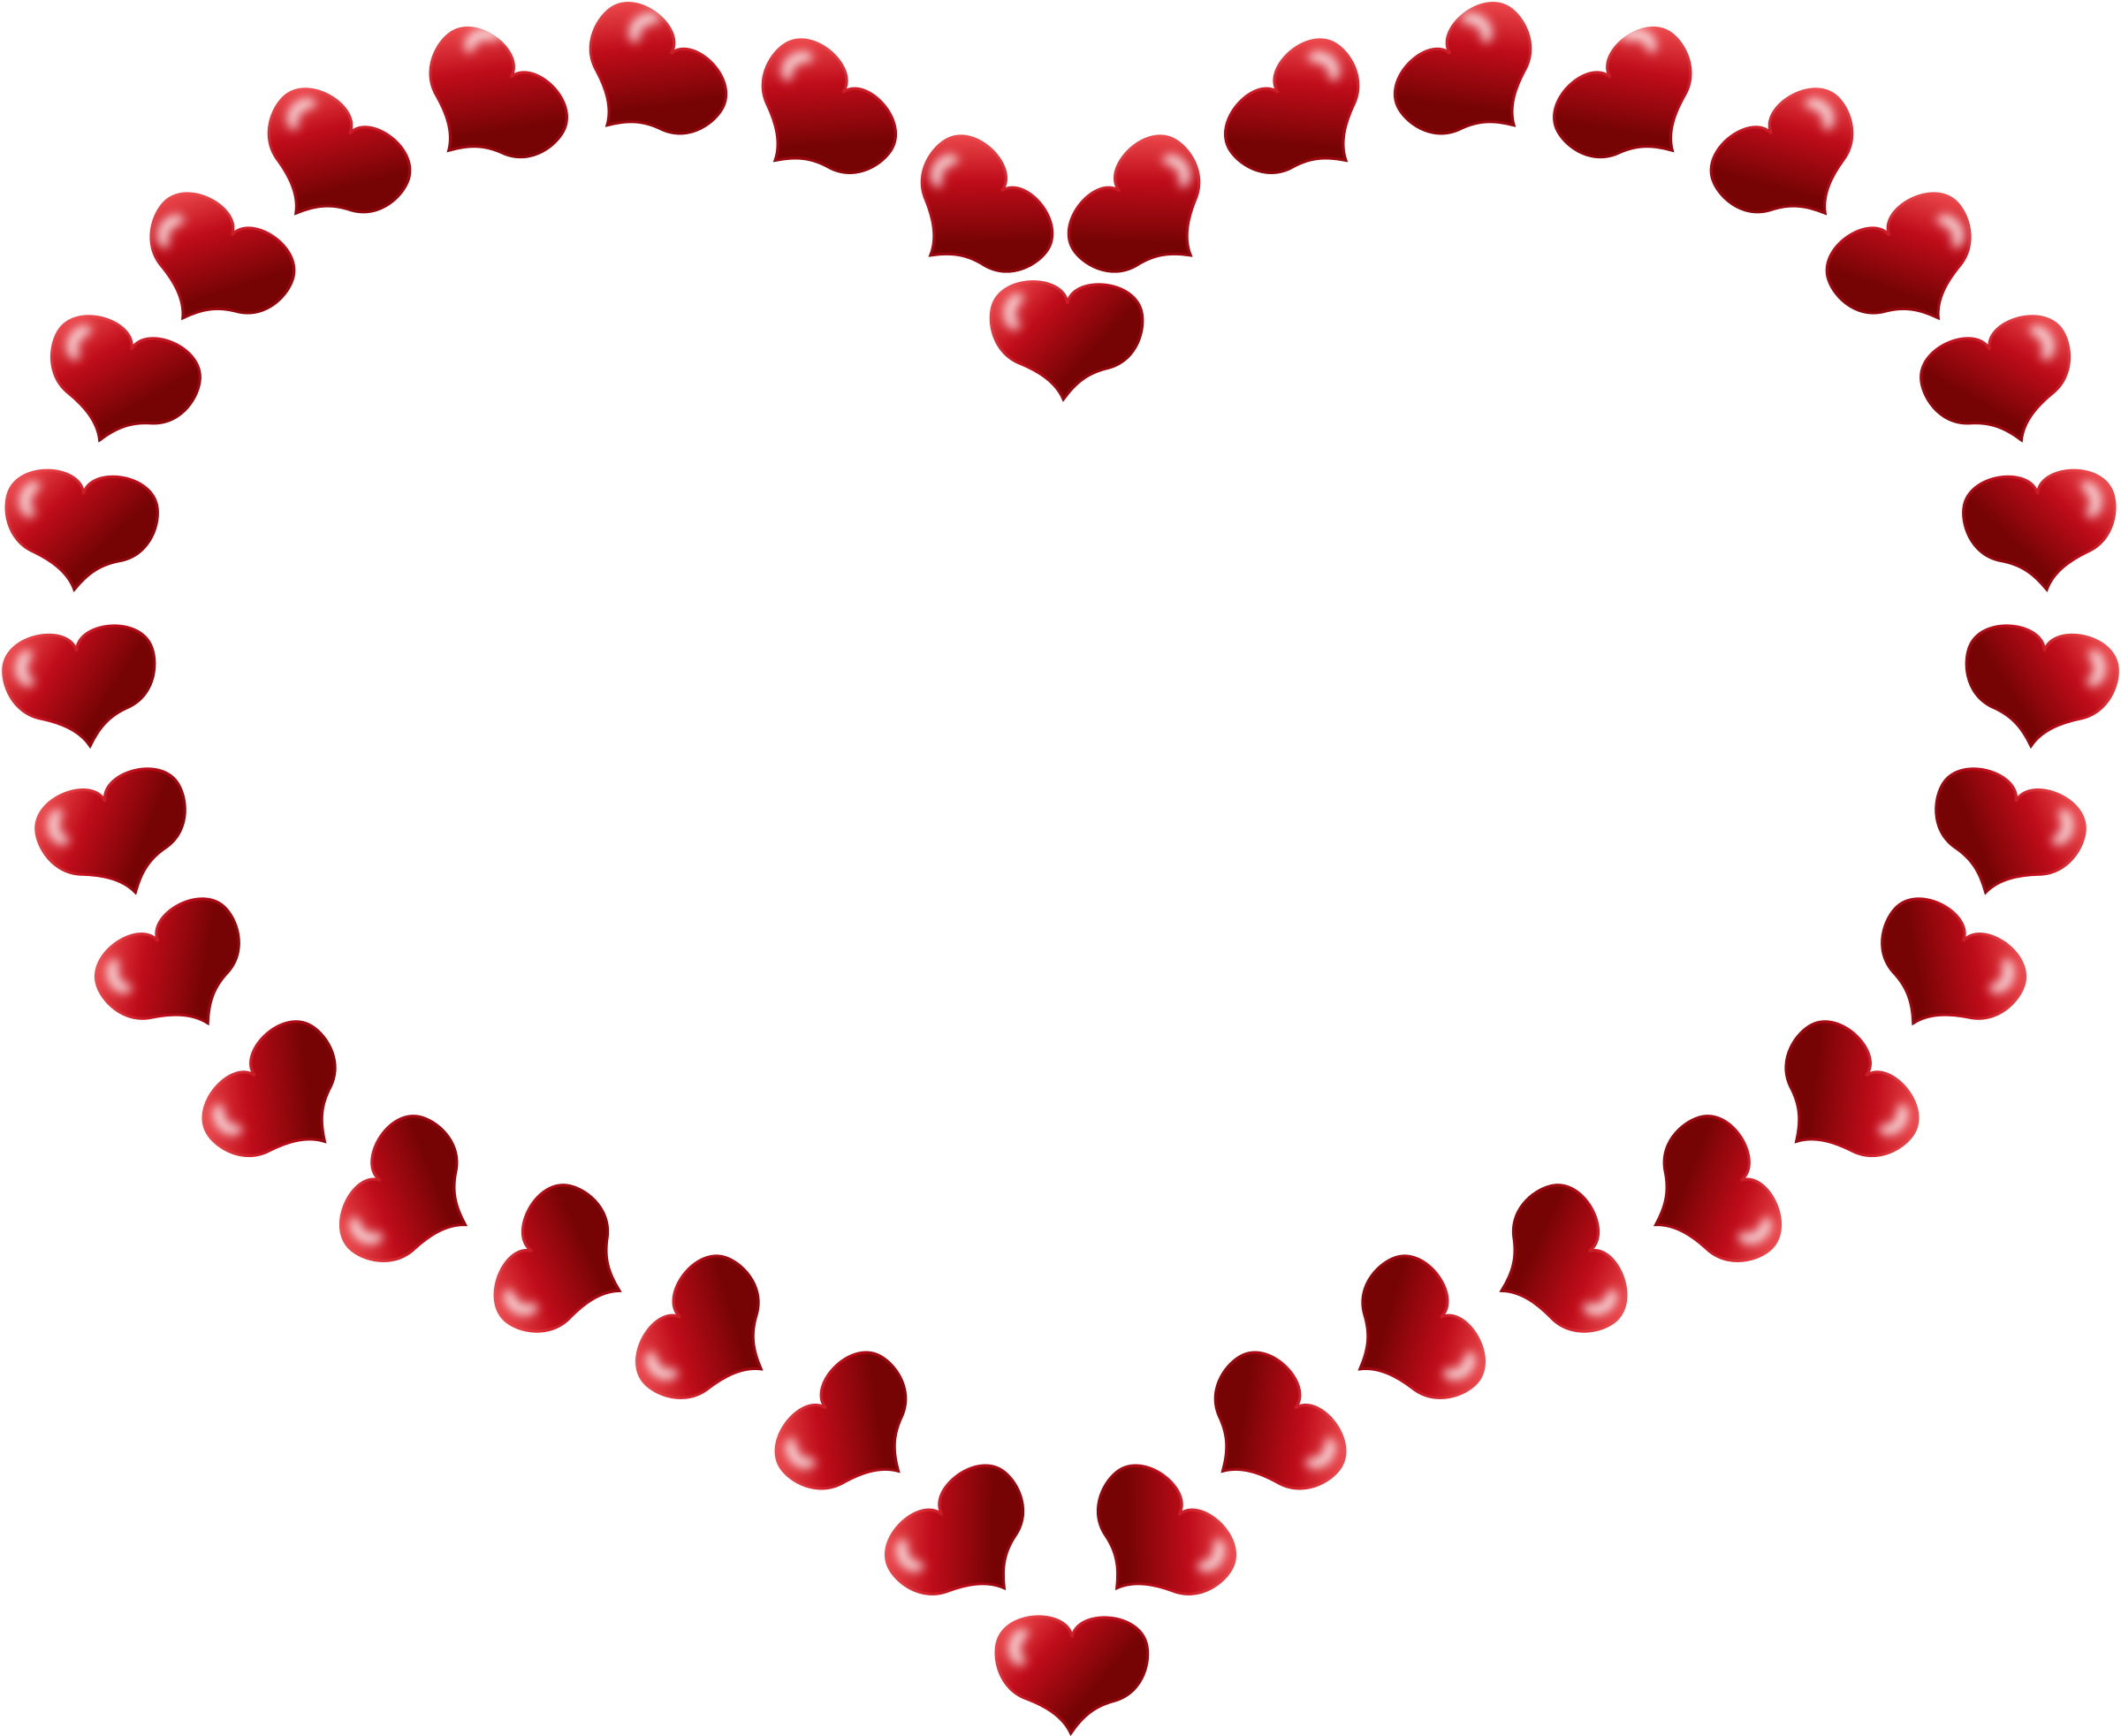 Heart-shaped clipart #9, Download drawings